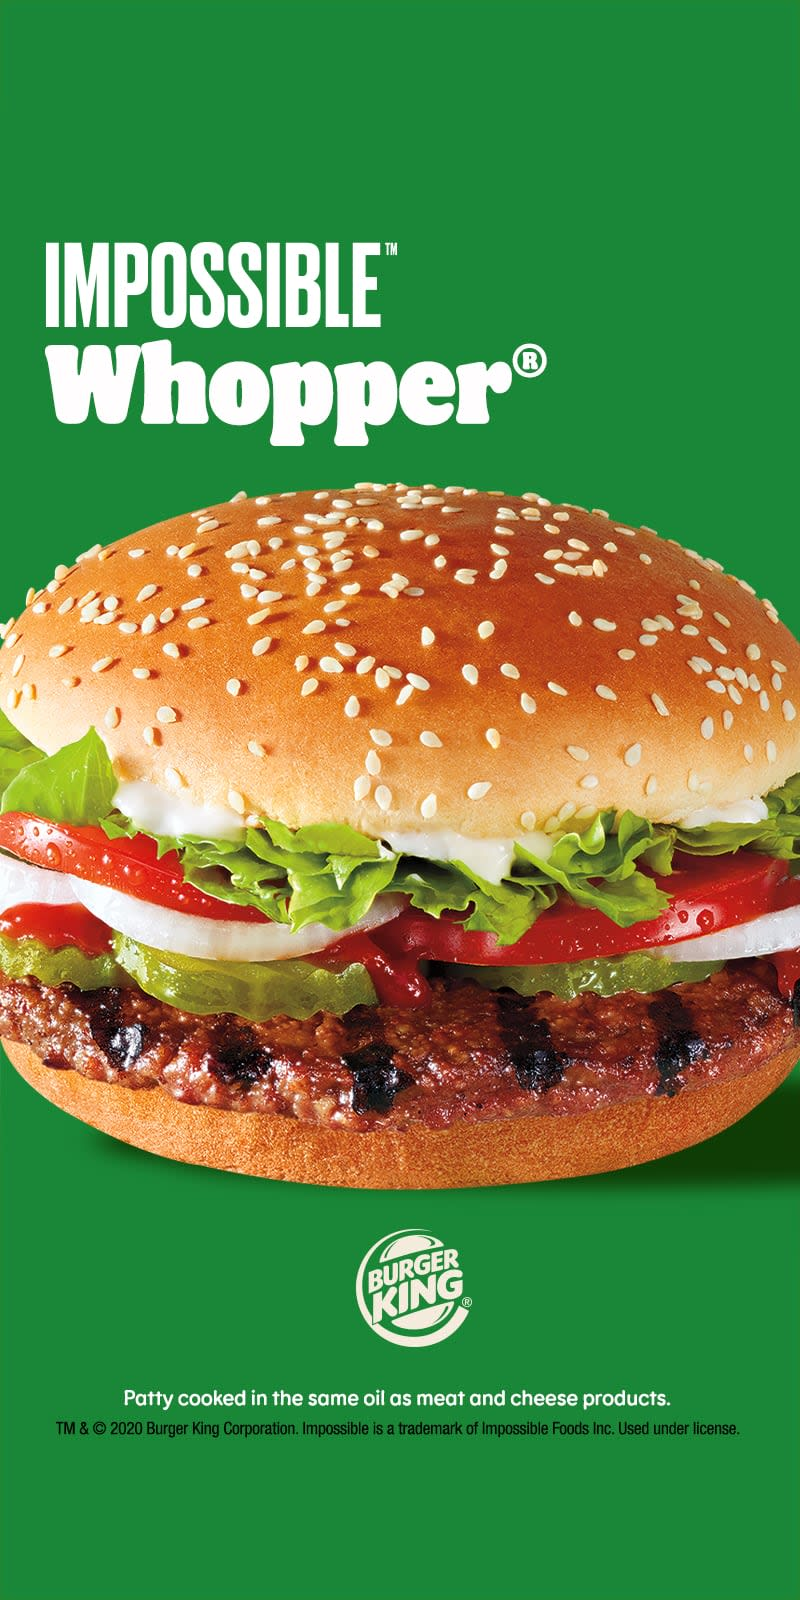 Impossible Whopper from Burger King on green background